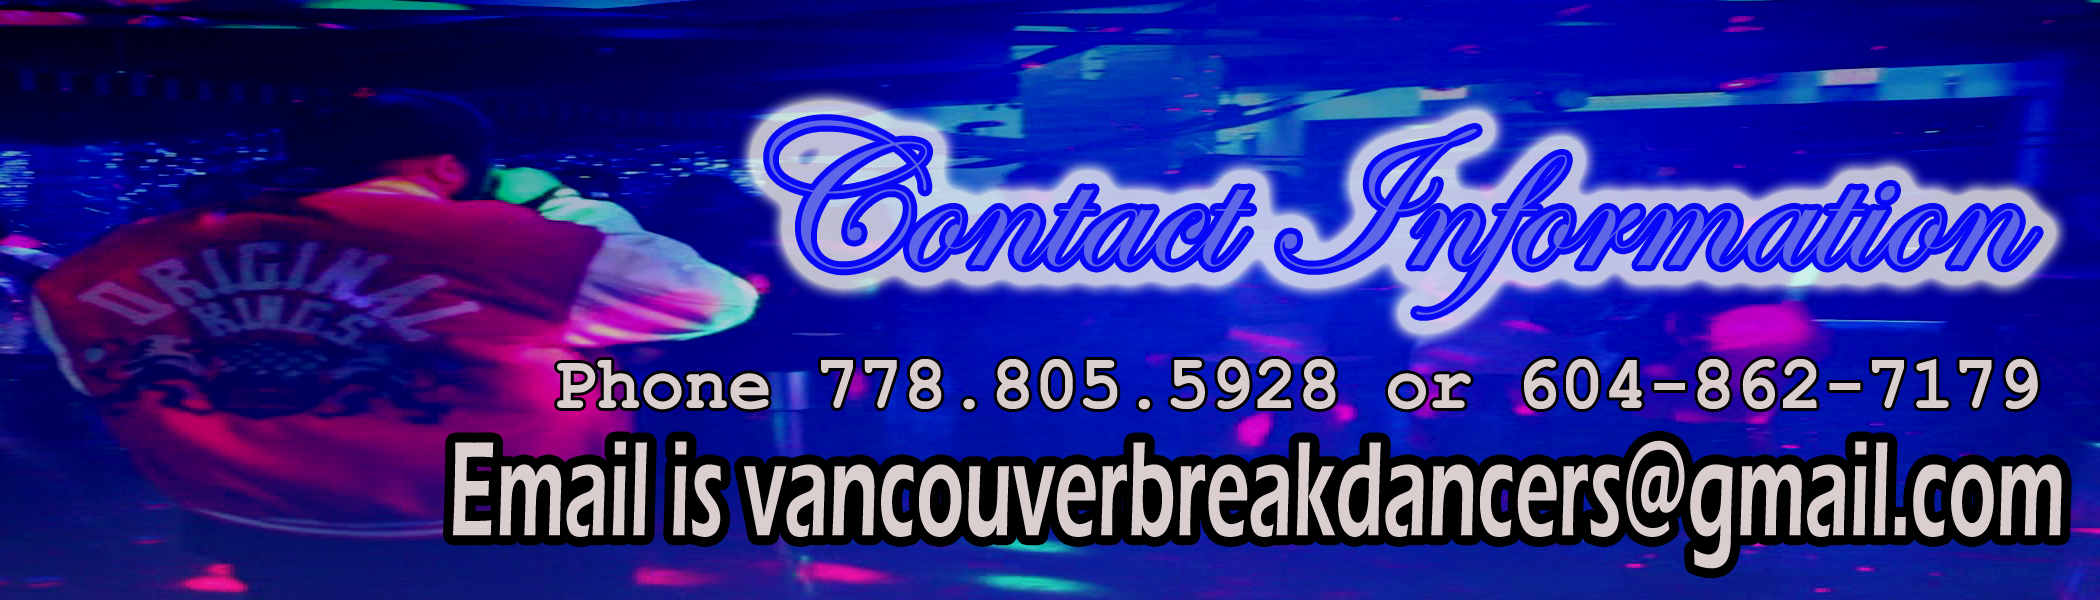 Vancouverbreakdancer Weddings Events Entertainment Services